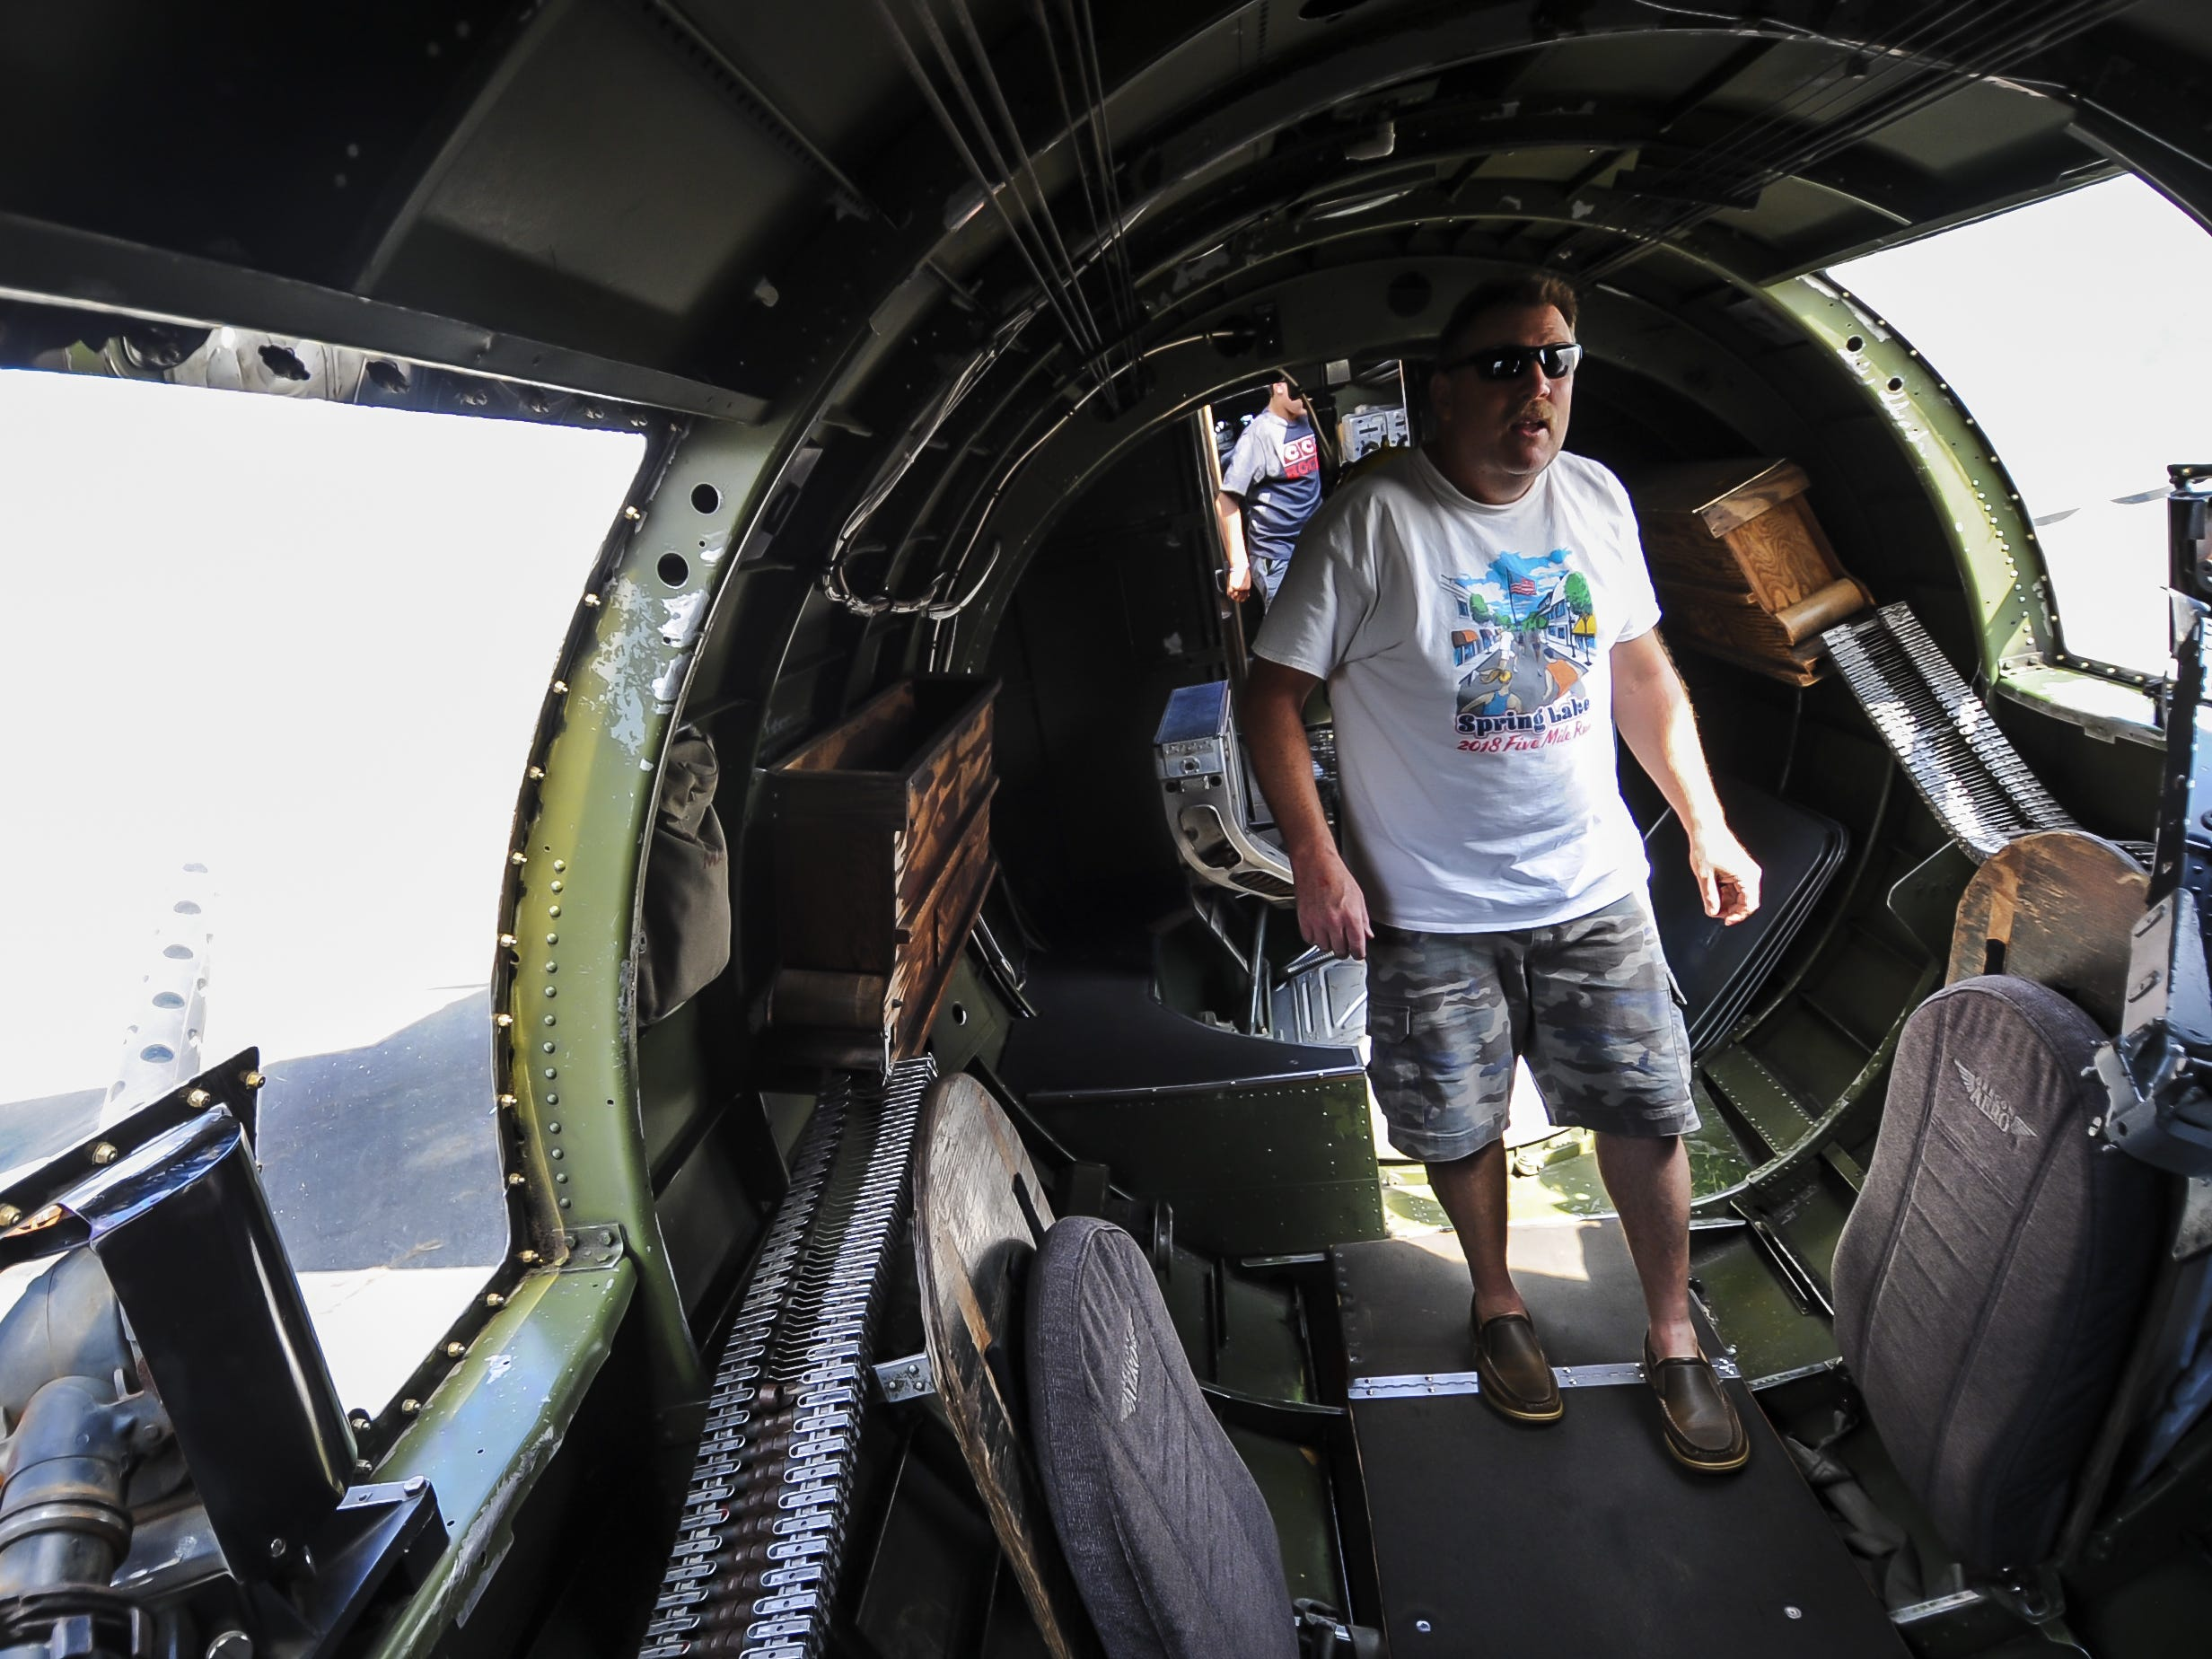 Jonathan Murath of Howell, gets a closer look inside the B-17 G Flying Fortess during the traveling WW II Wings of Freedom Tour exhibit at Momouth Jet Center/Executive Airport in Wall on Aug. 22, 2018.